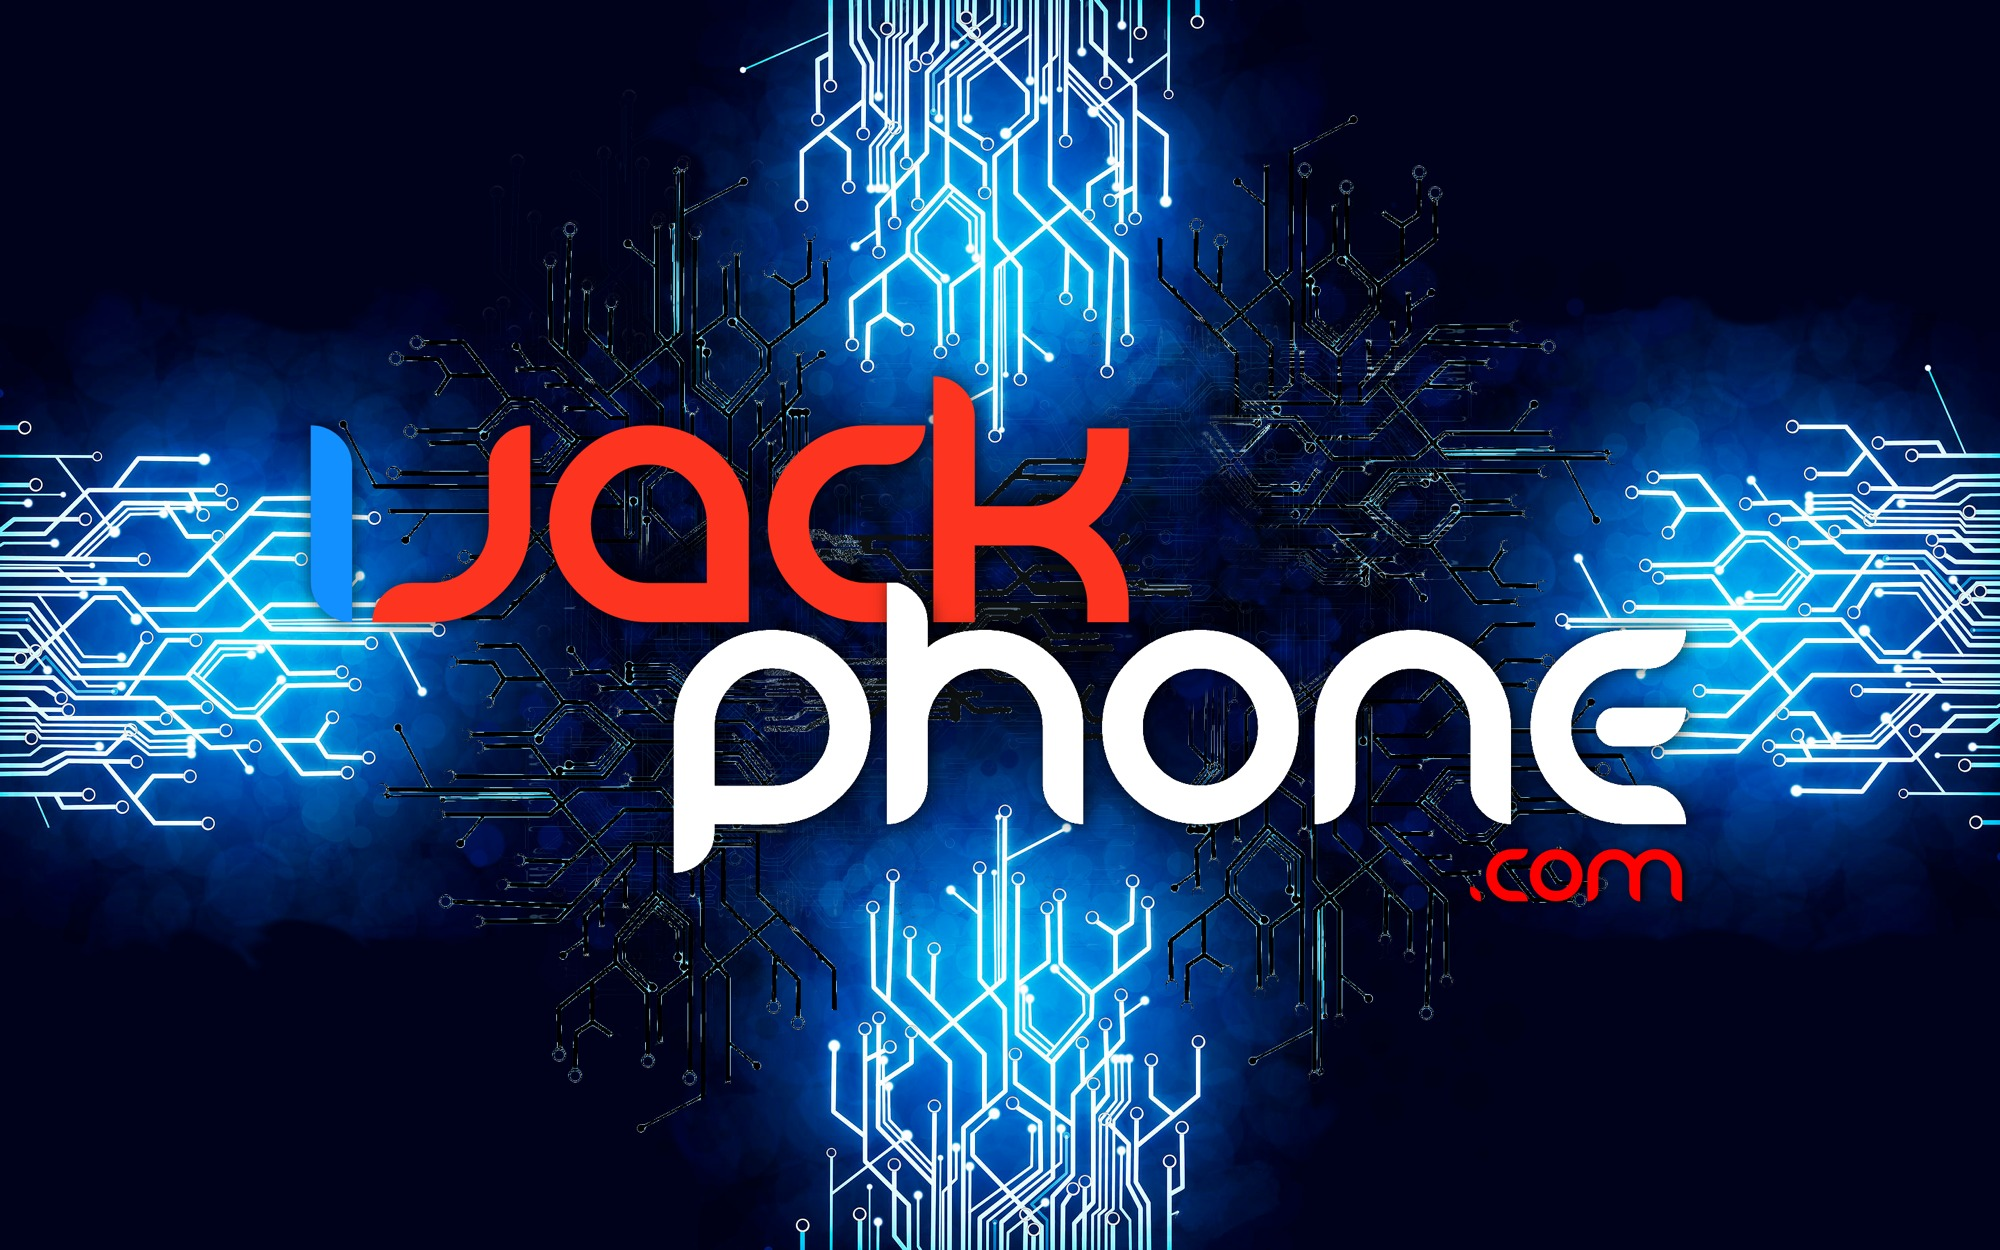 iJackPhone Techno_screen